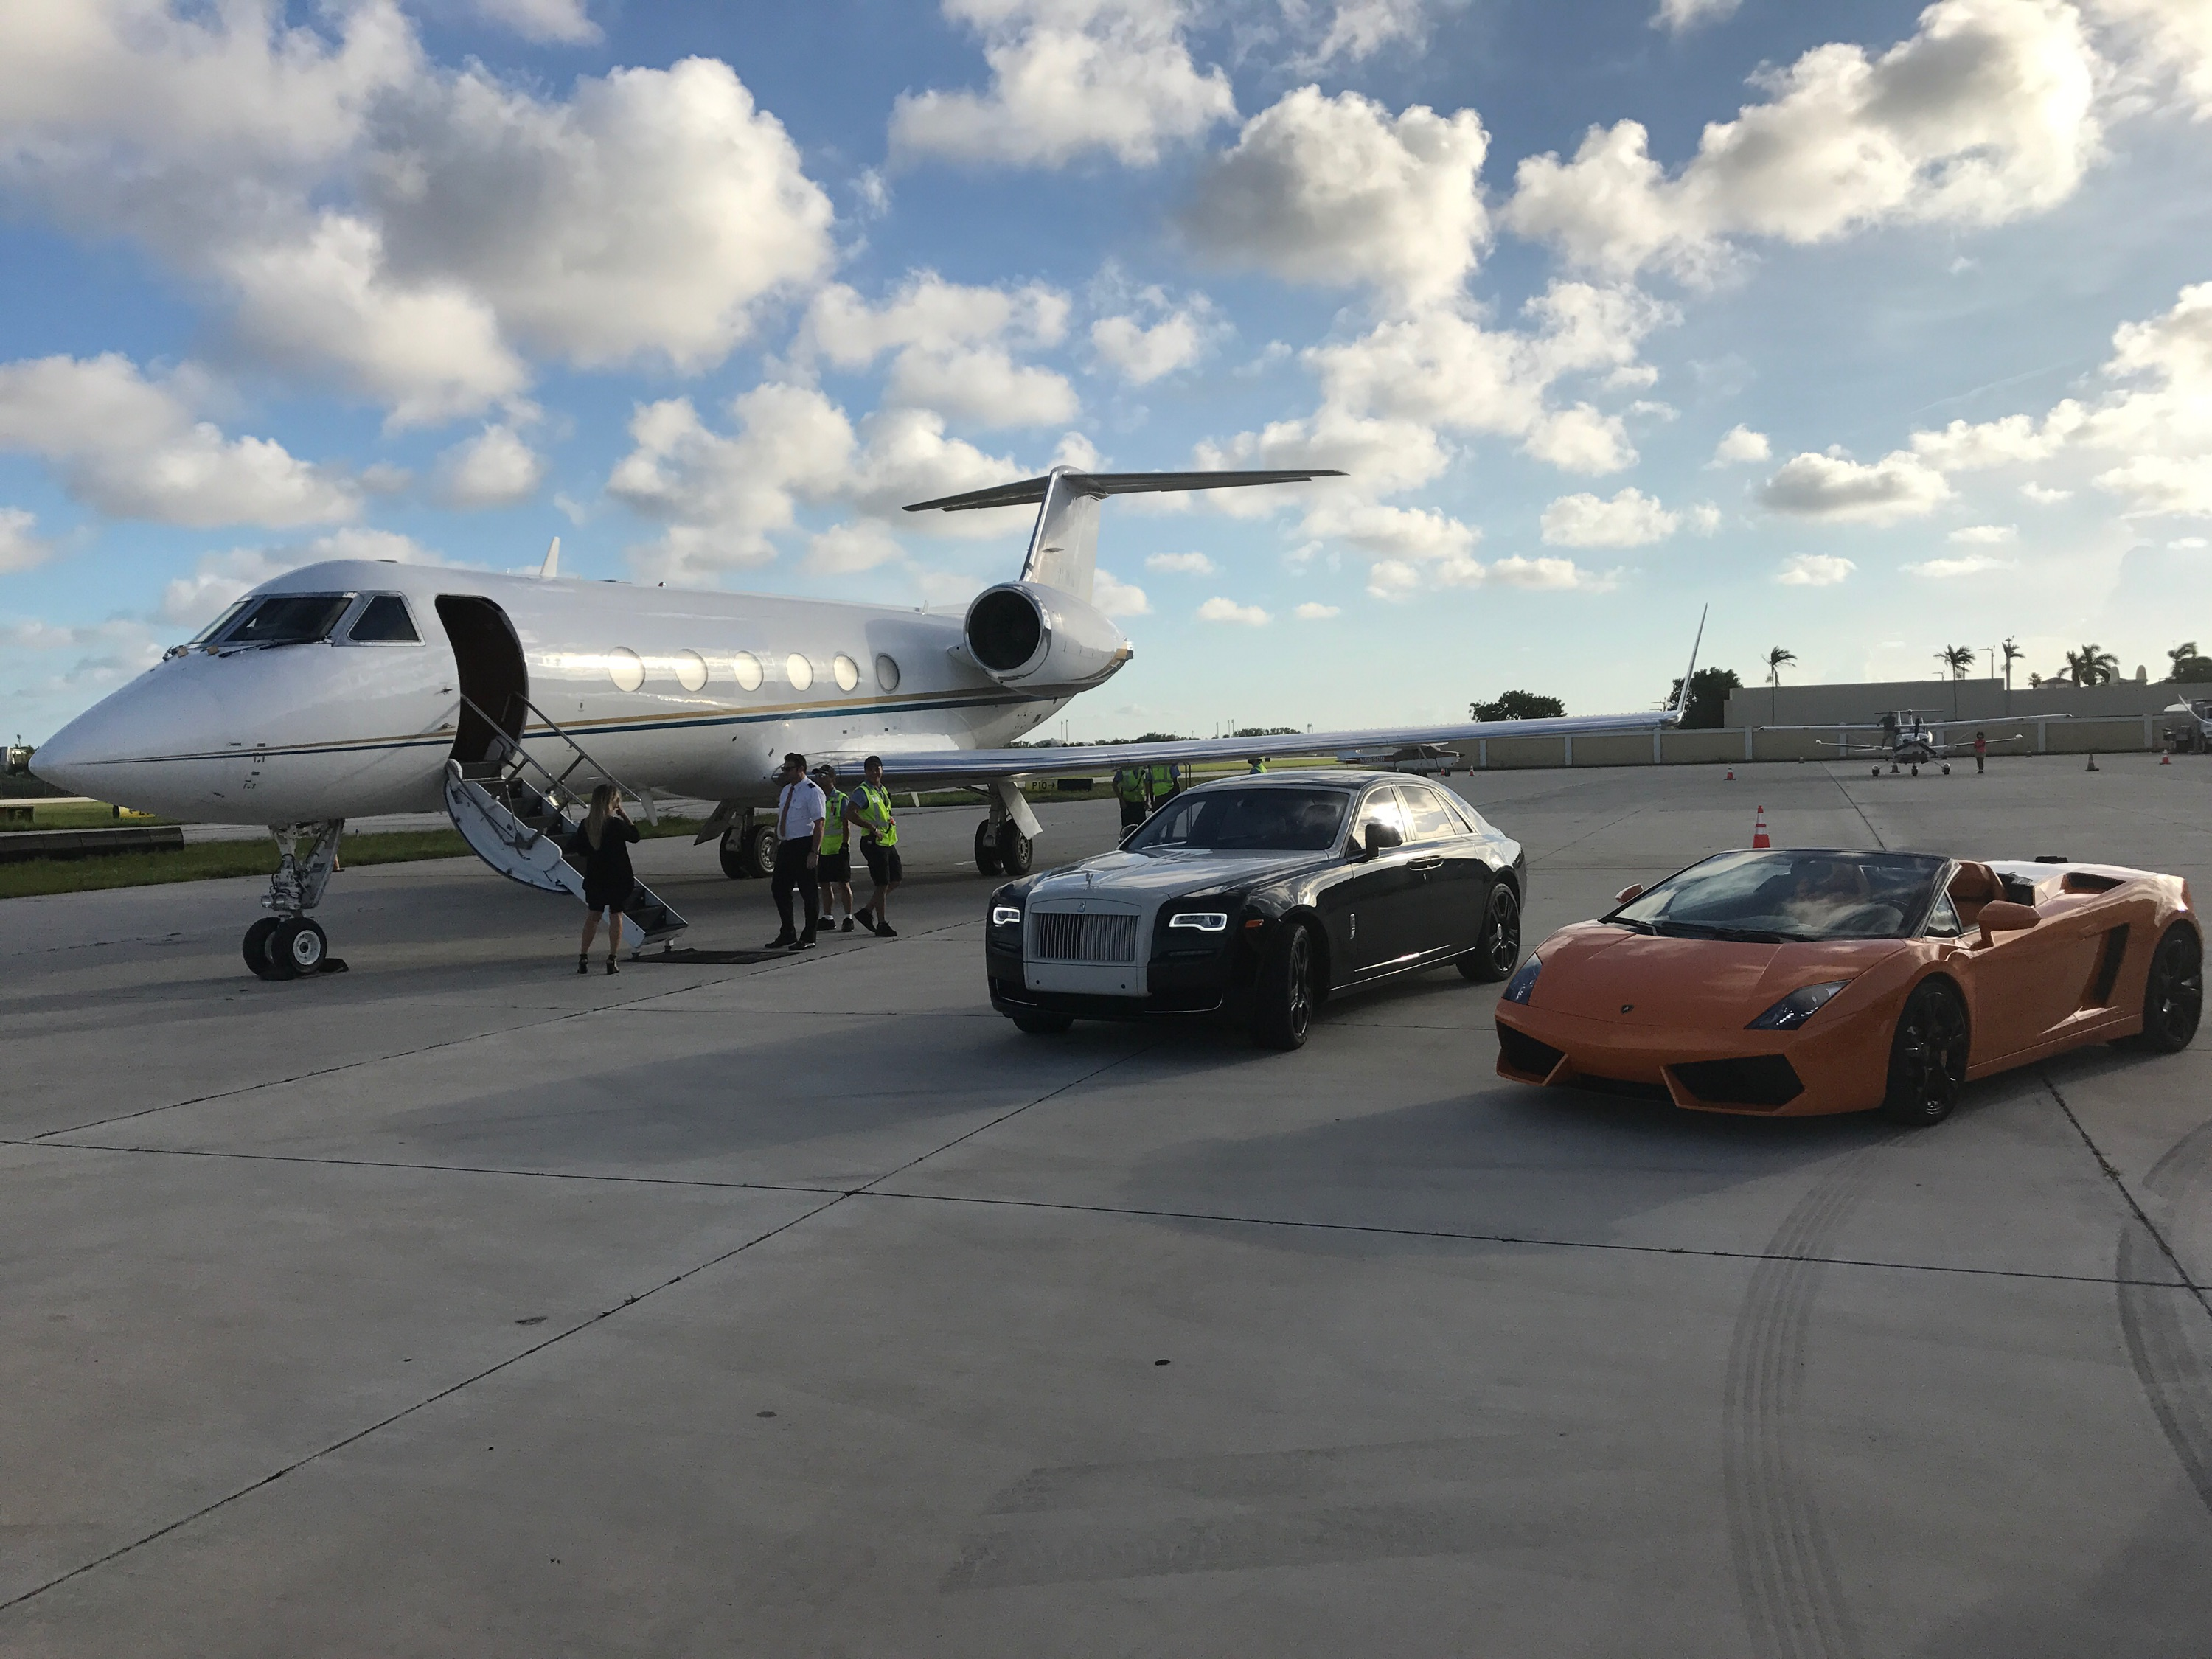 This Company Offers Top Line Exotic Car Rental Services In Miami Newswire